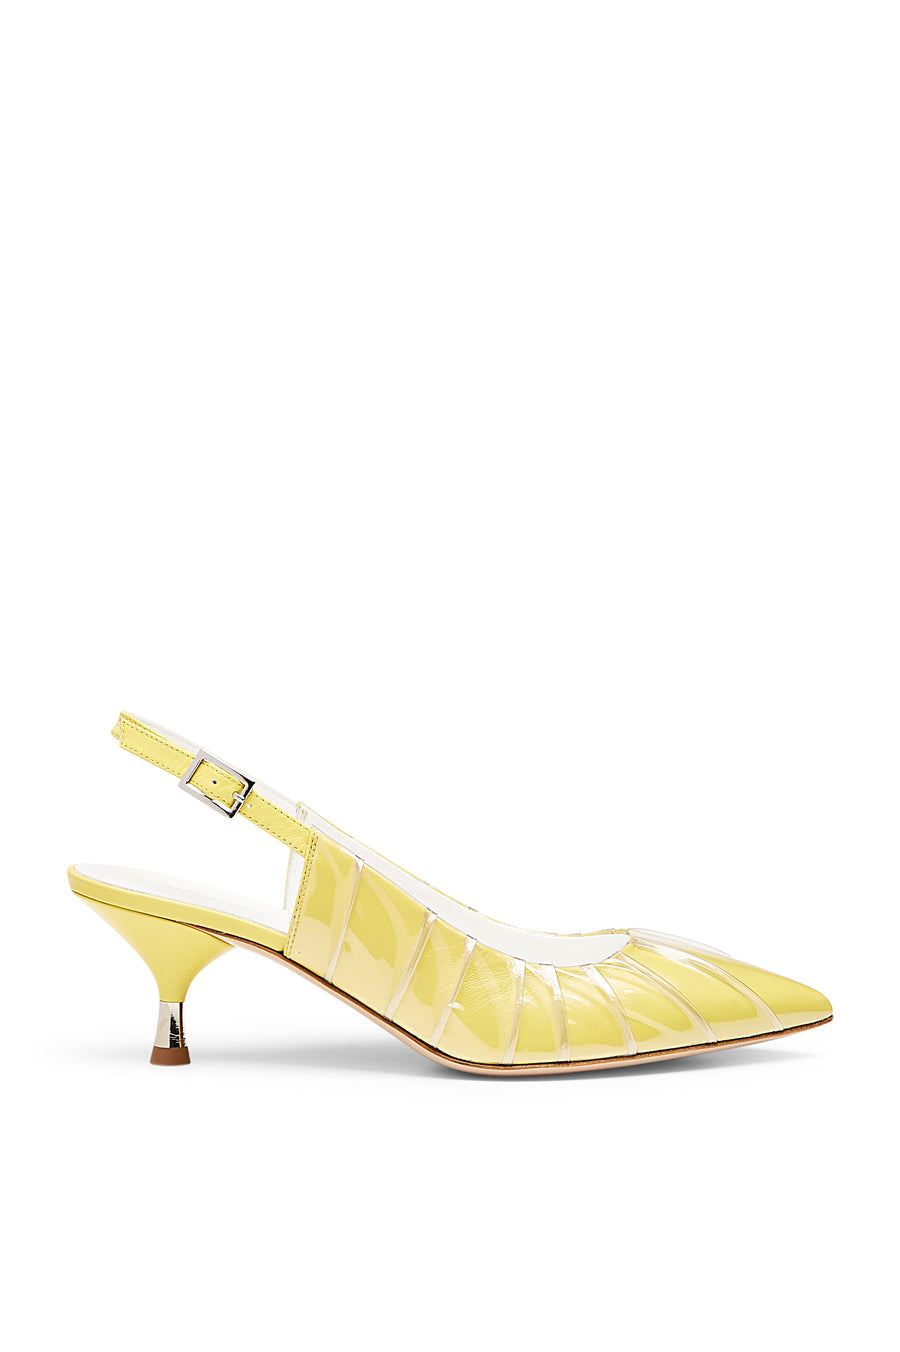 TUCKED SLINGBACK 5.5 CITRON, CITRON color